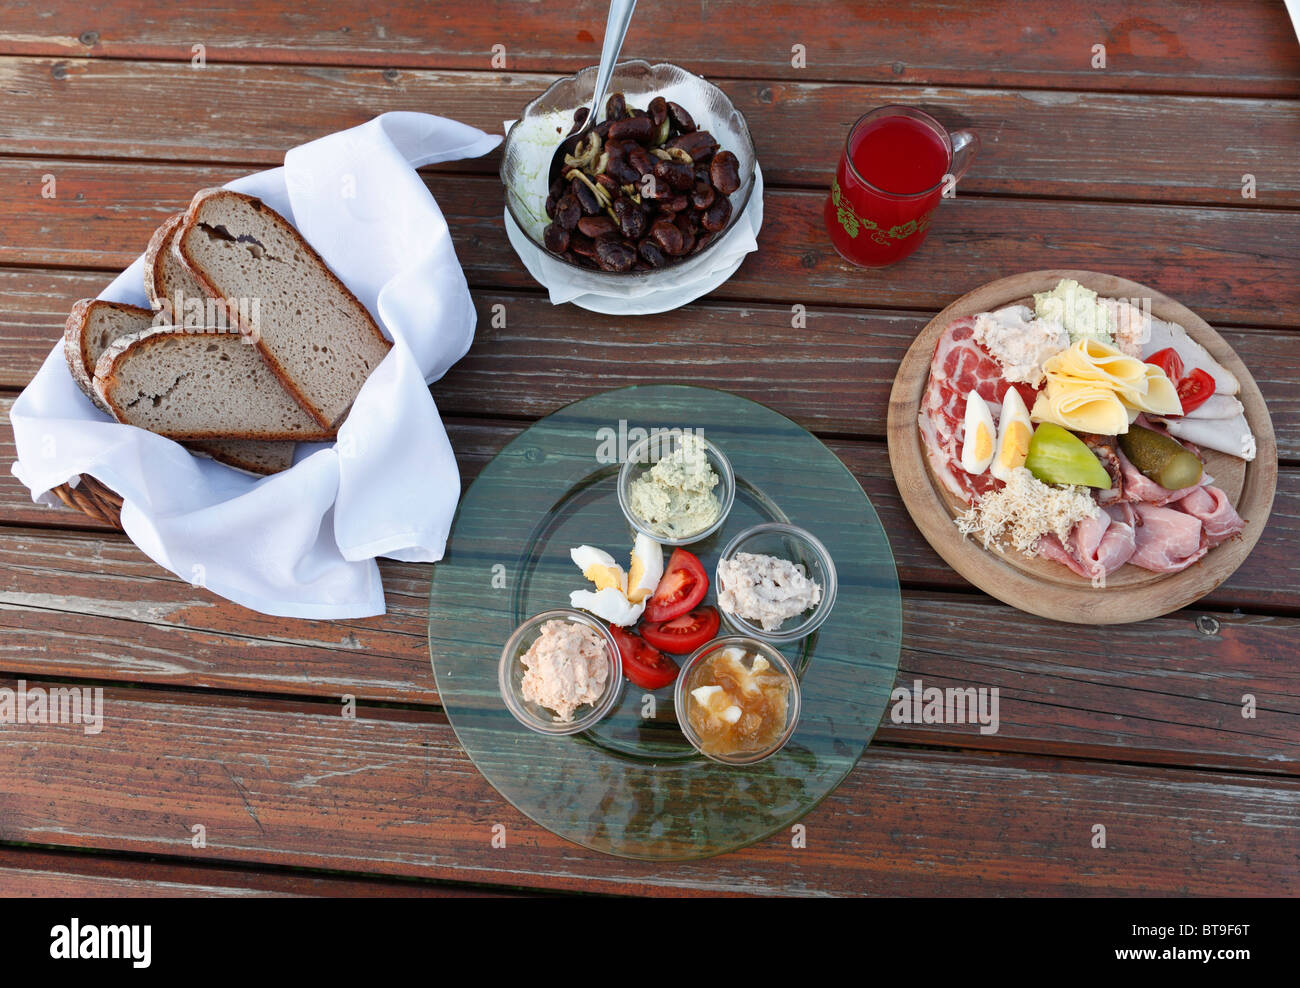 Hearty snack, bread and a plate with a variety of spreads, Brettljause, a plate with cold cuts, Styrian scarlet - Stock Image